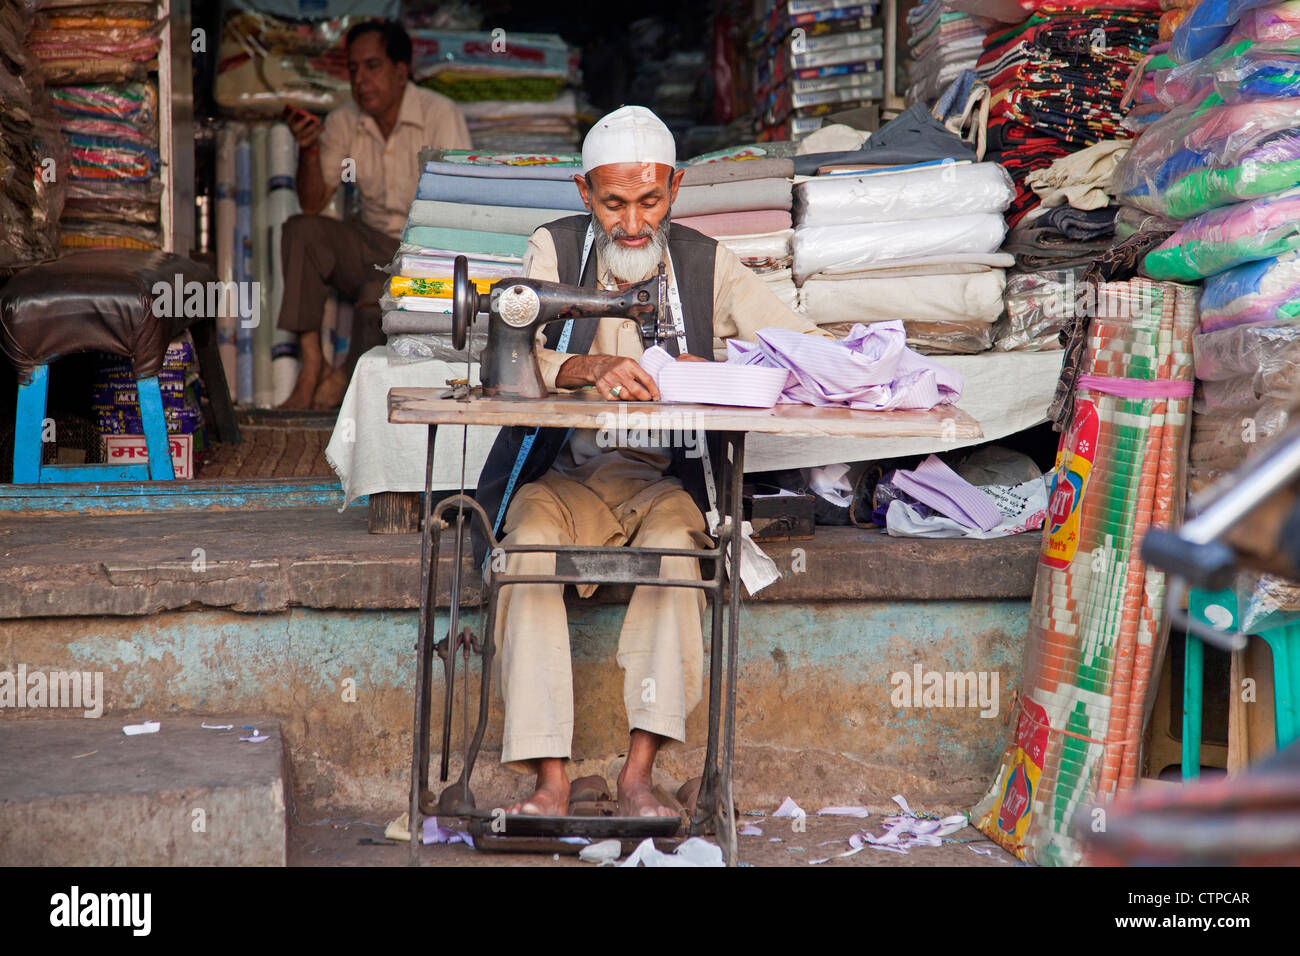 Tailor making clothes on old sewing machine in front of tailoring establishment, Delhi, India - Stock Image